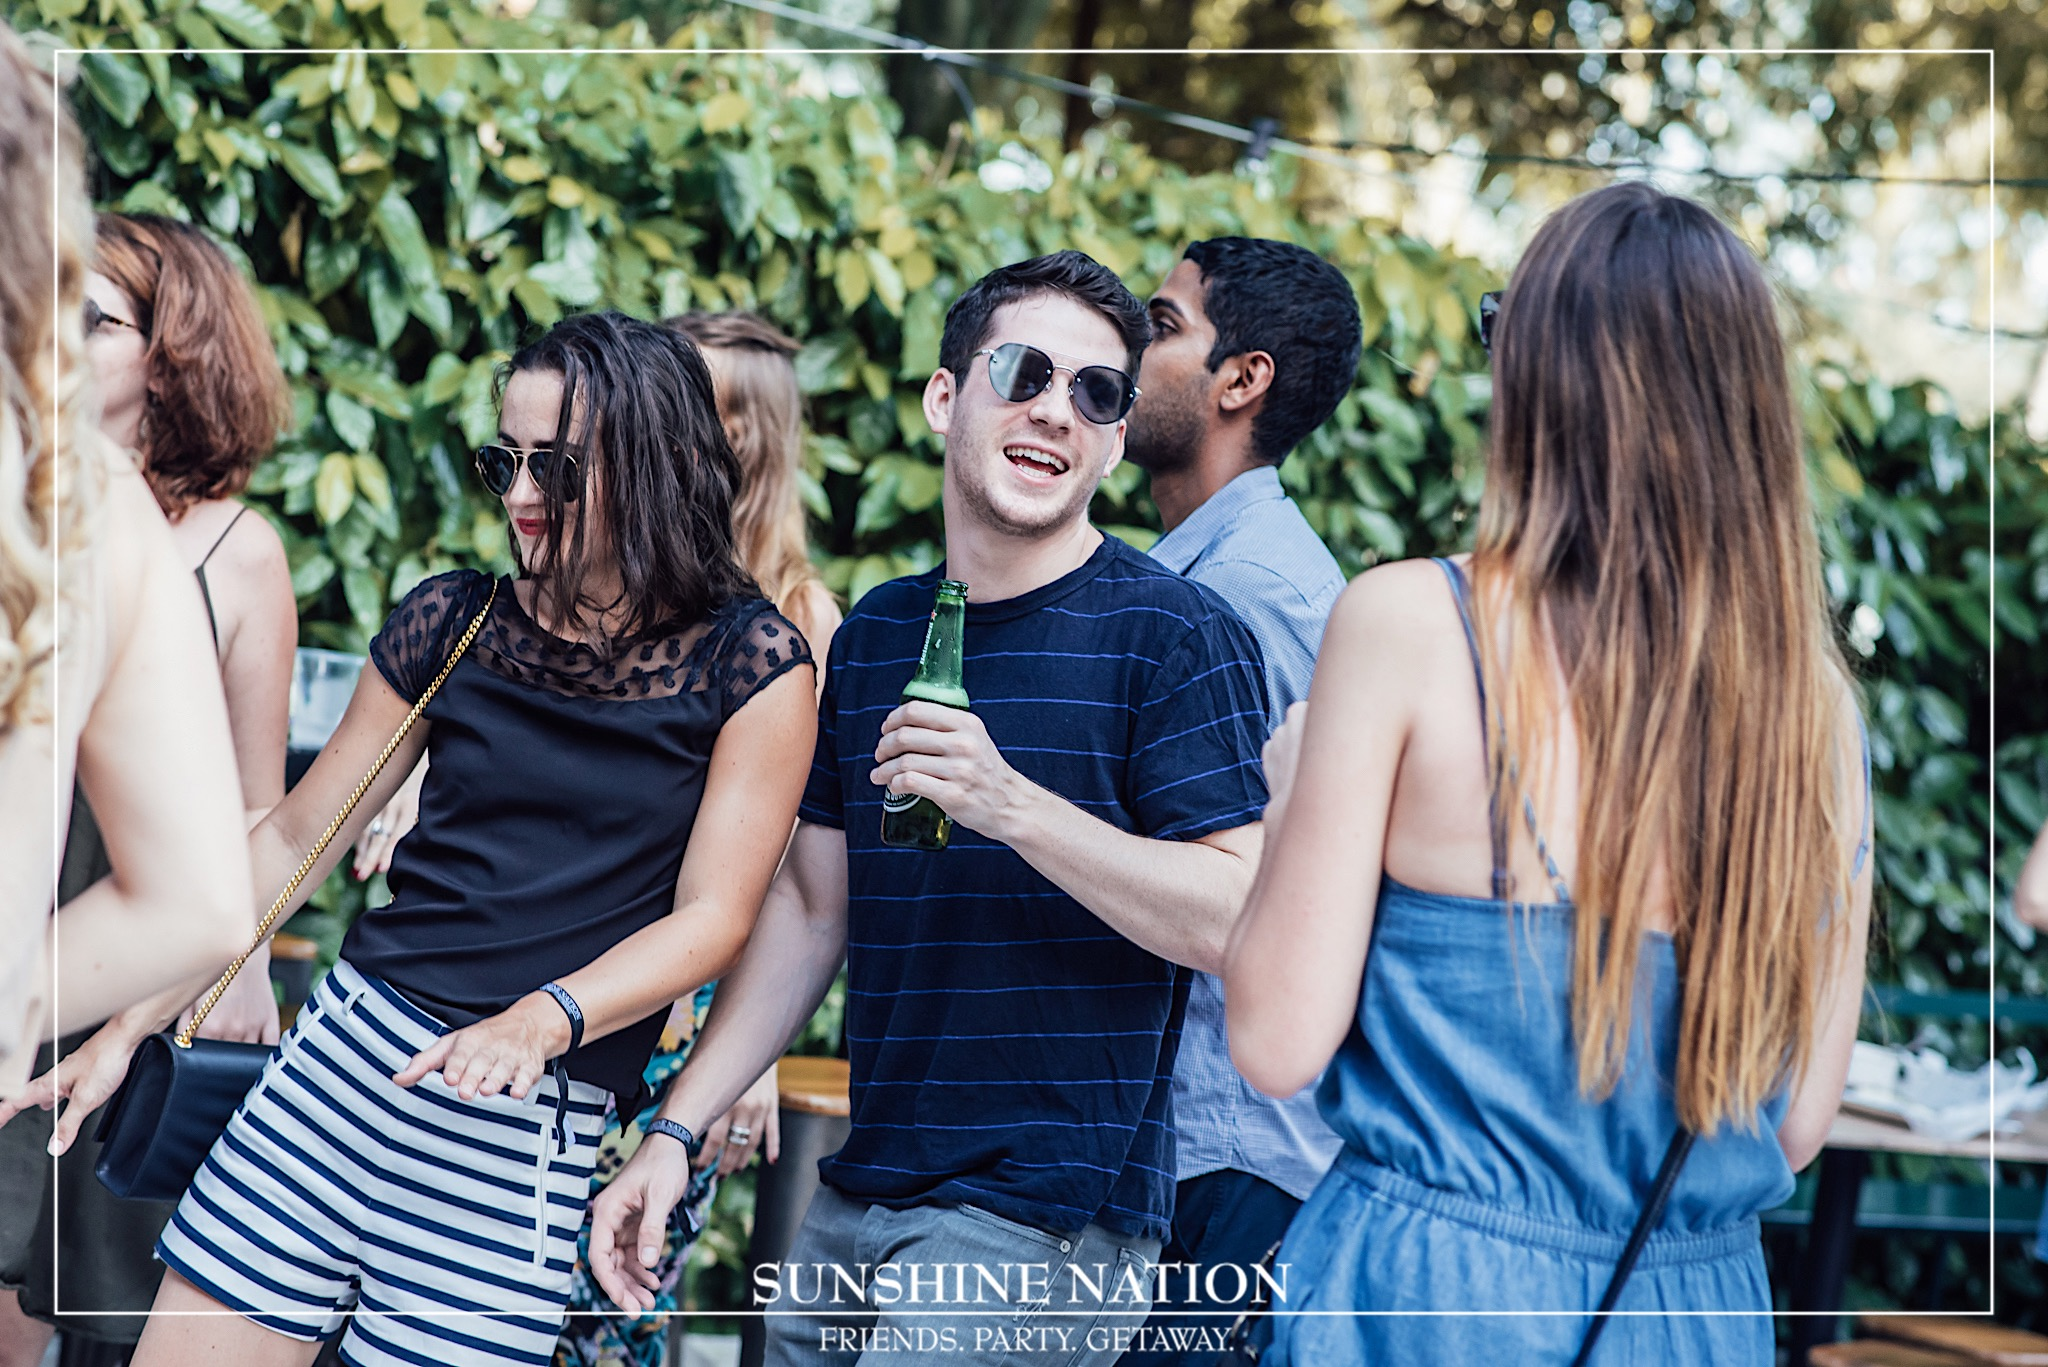 18092016_SunshineNation_Colossal114_Watermarked.jpg